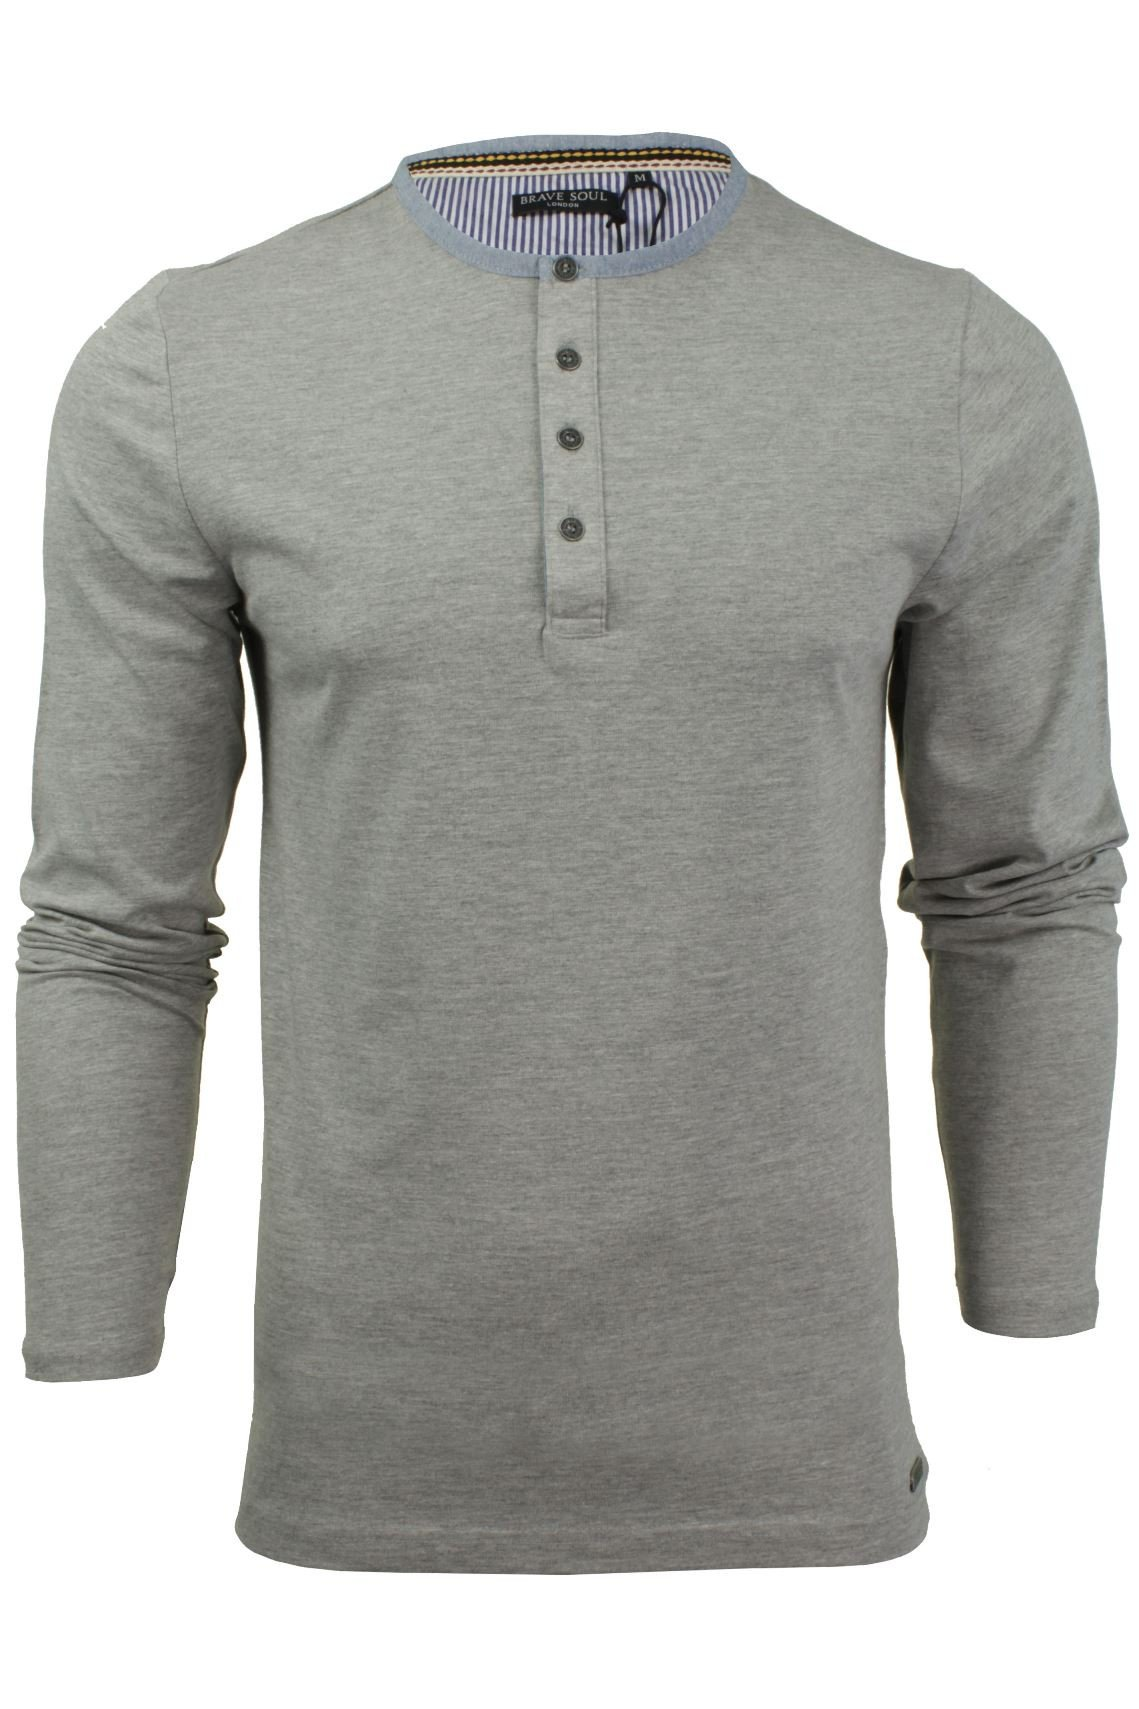 Men s Brave Soul Long Sleeve 100% Cotton Grandad Collar Casual Top ... b49b1f27f0